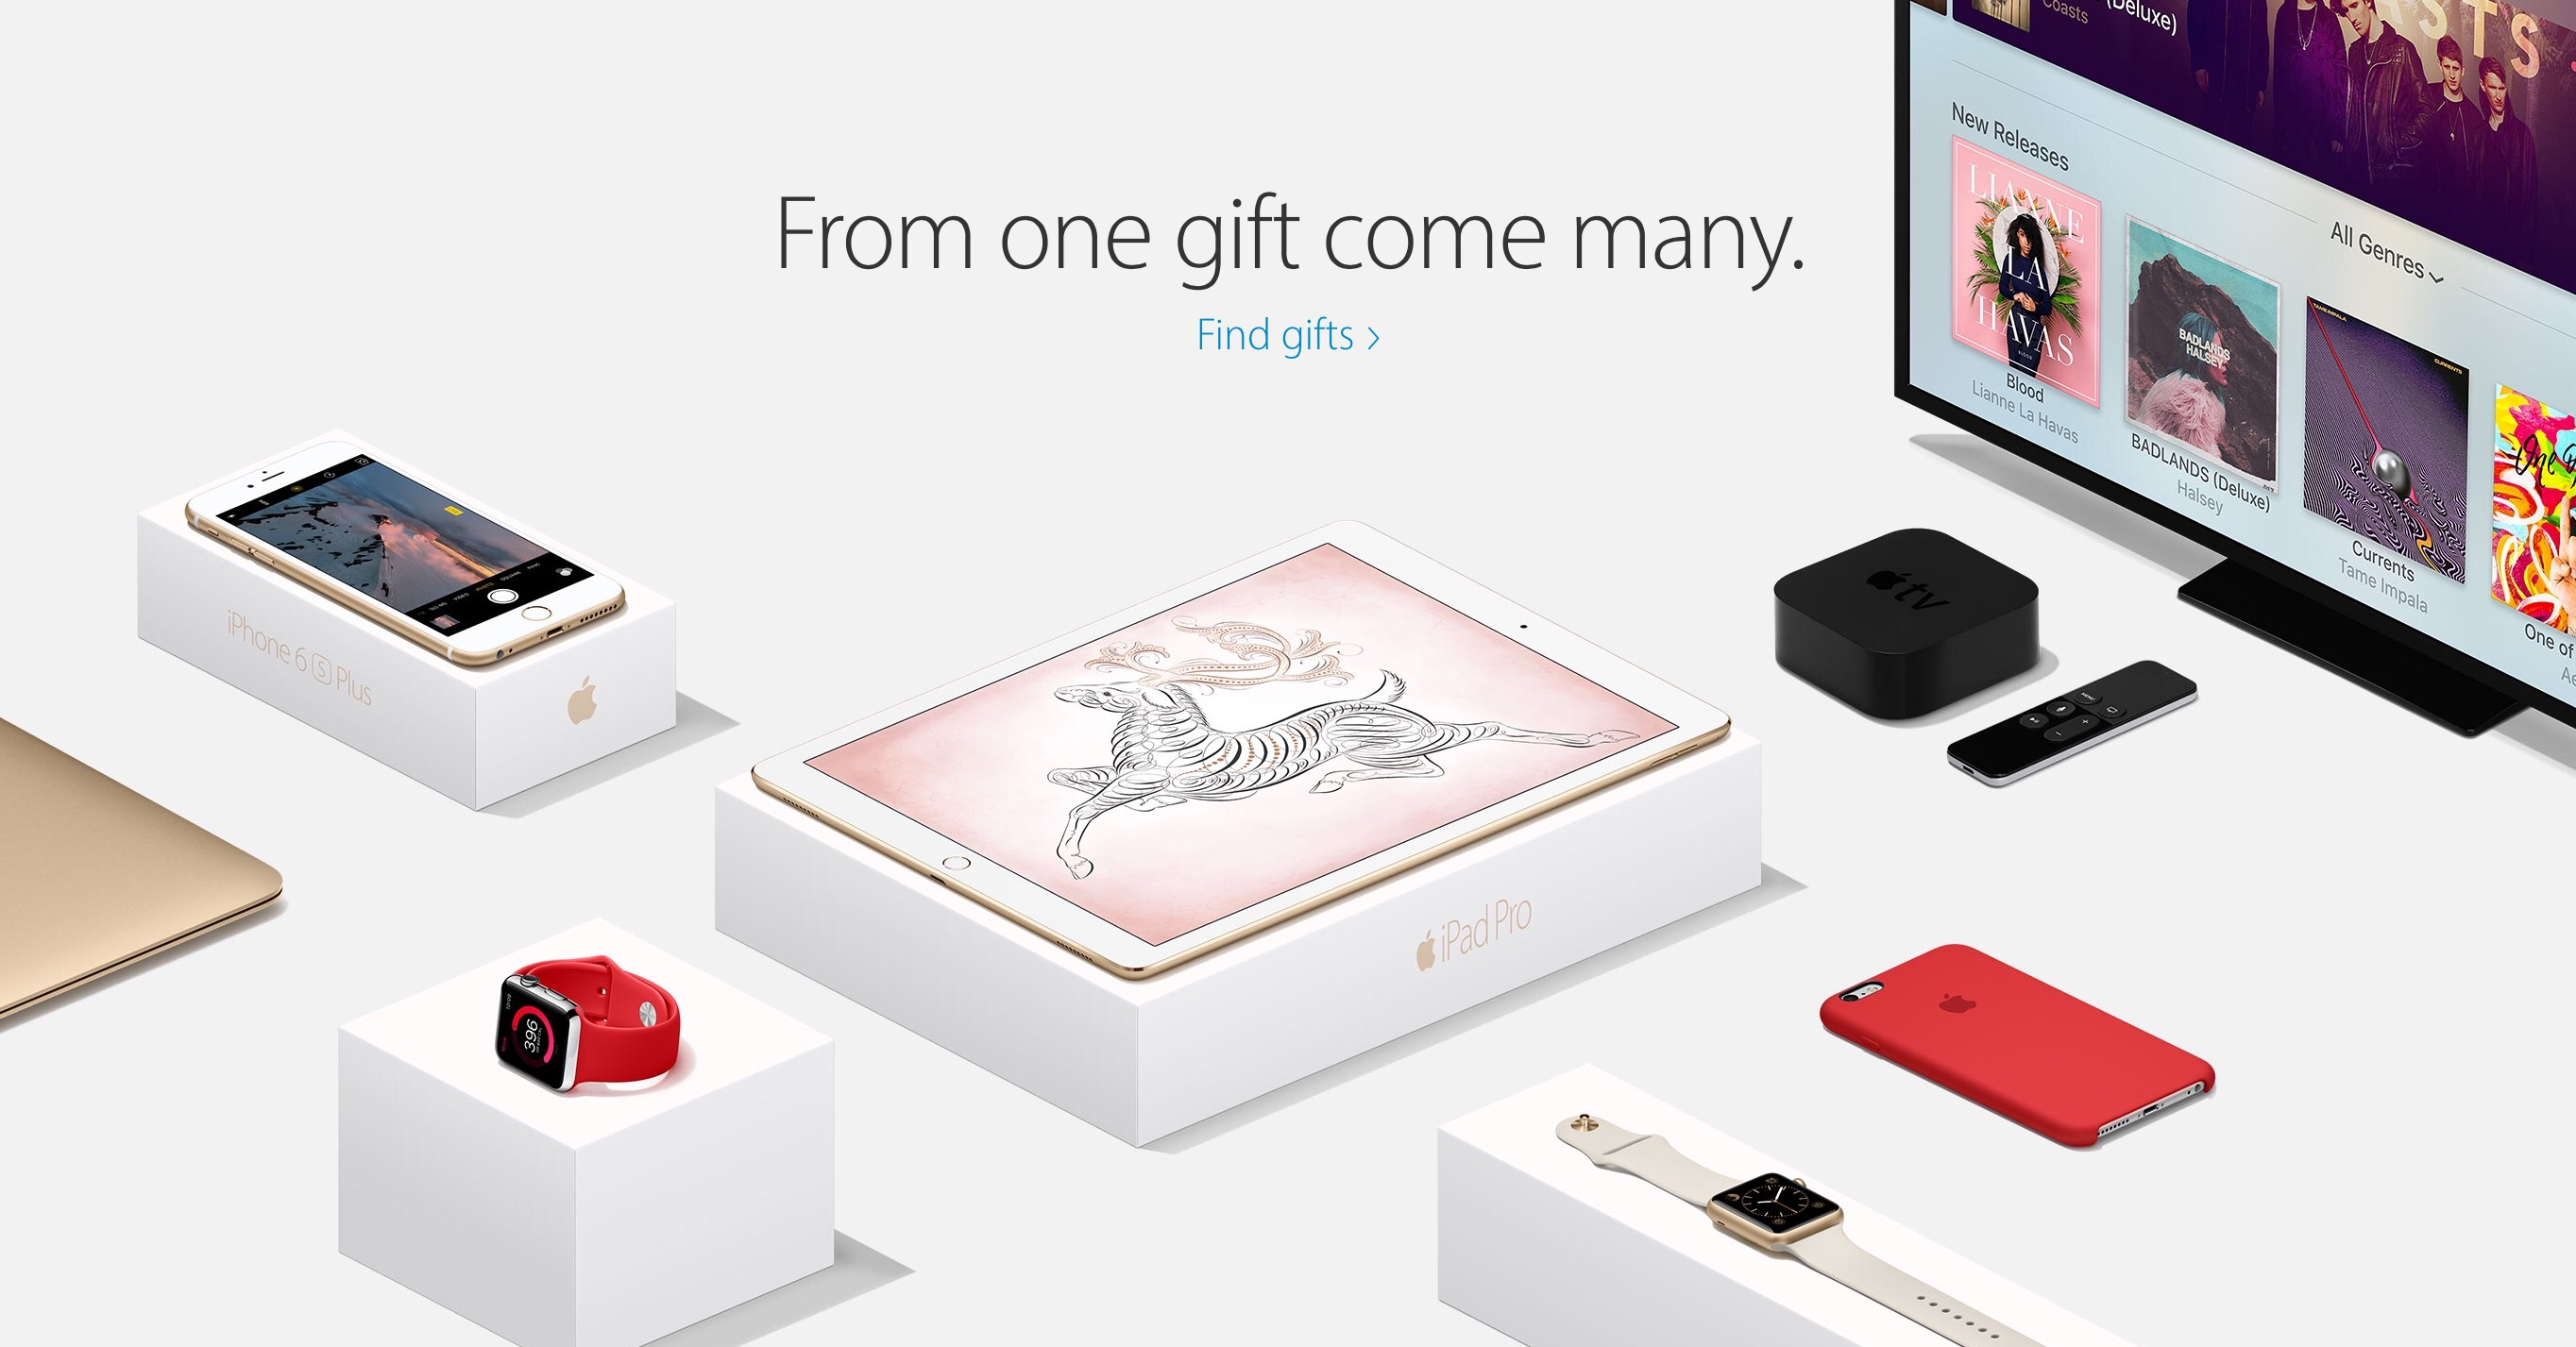 Almost half of all Christmas week activations were Apple devices